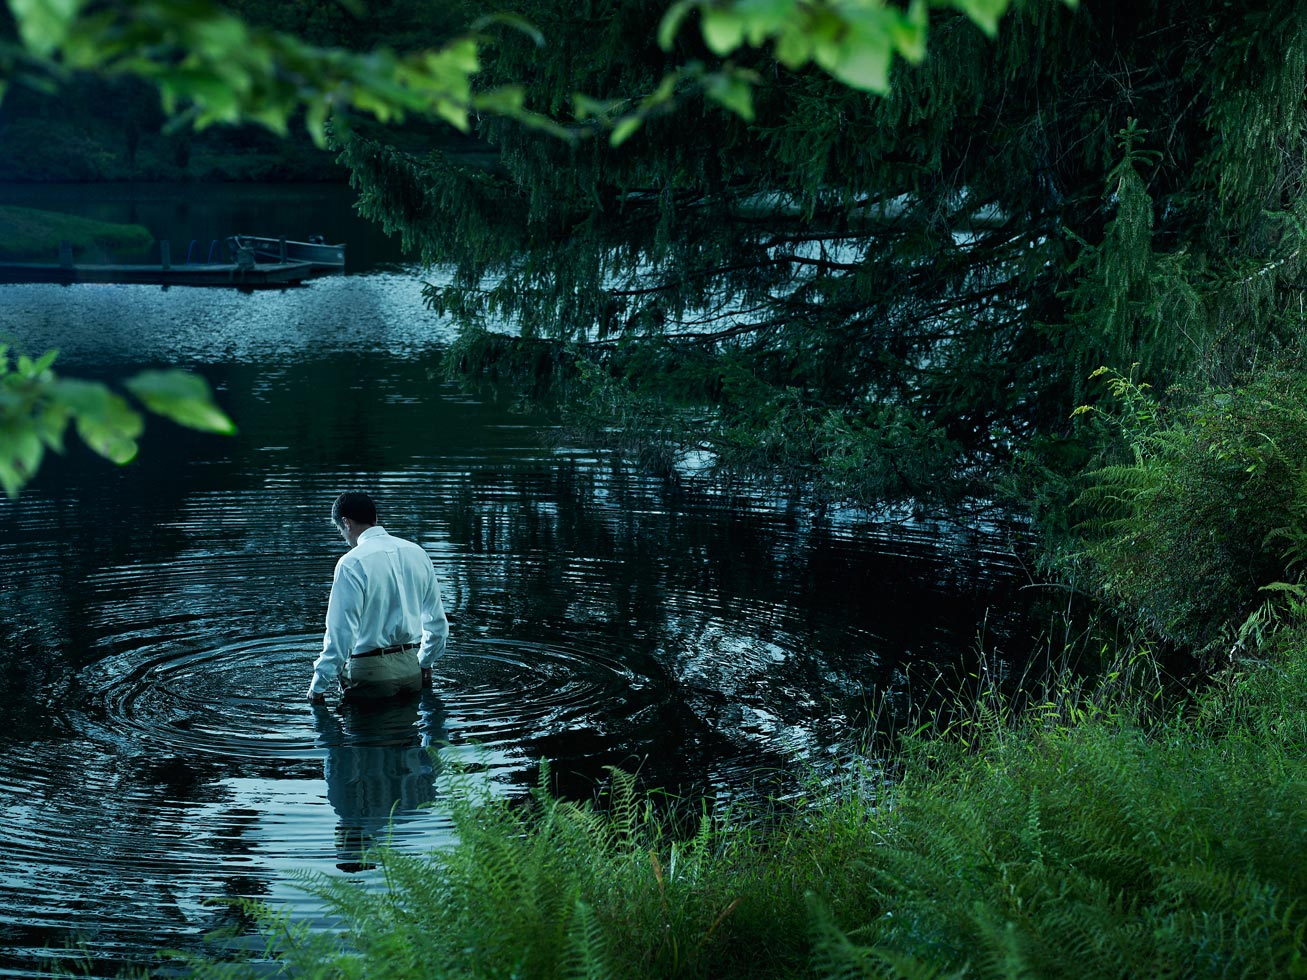 into-water-1.jpg